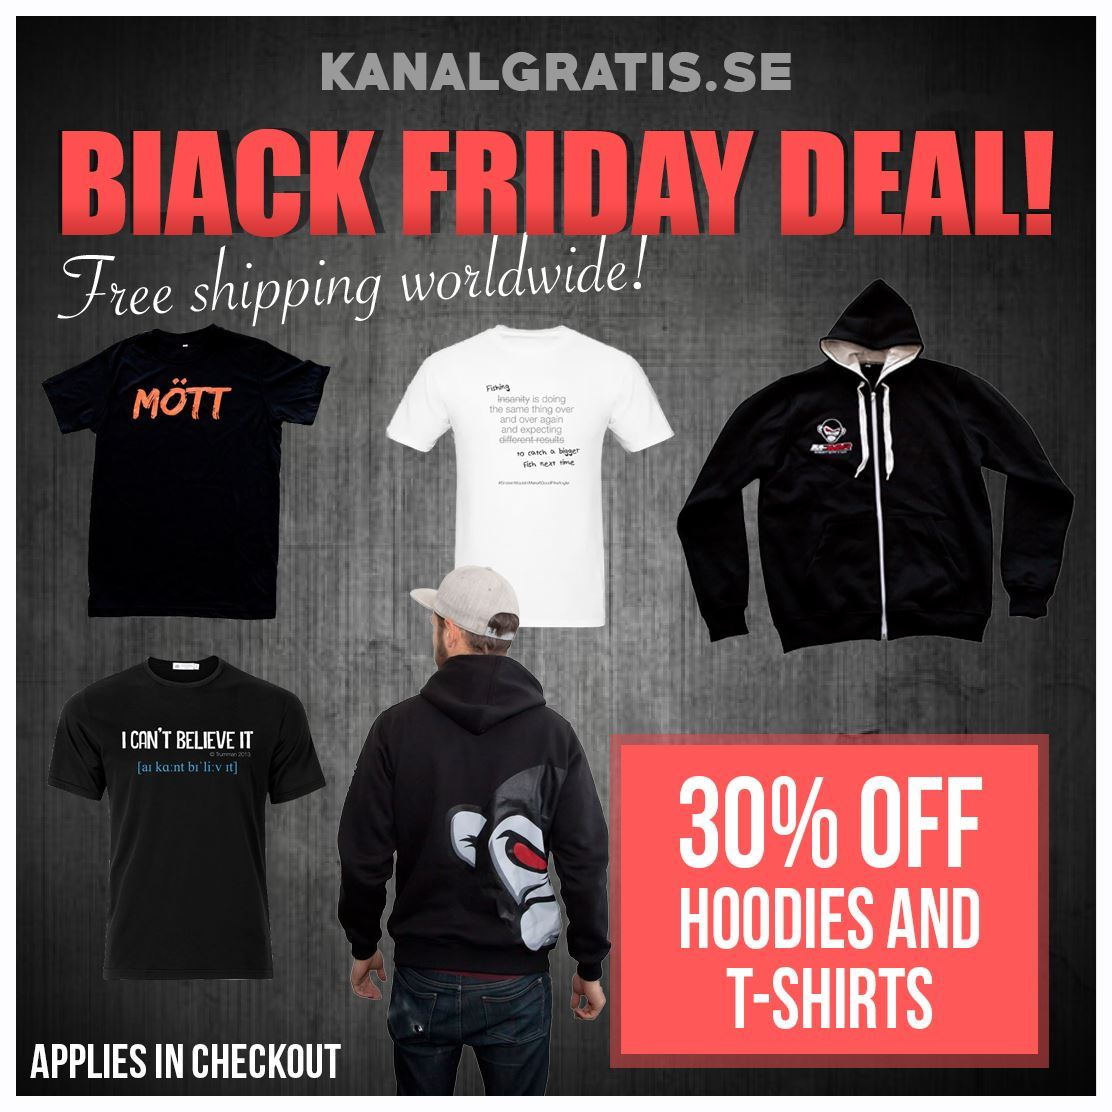 30% OFF T-SHIRTS AND HOODIES - Kanalgratis